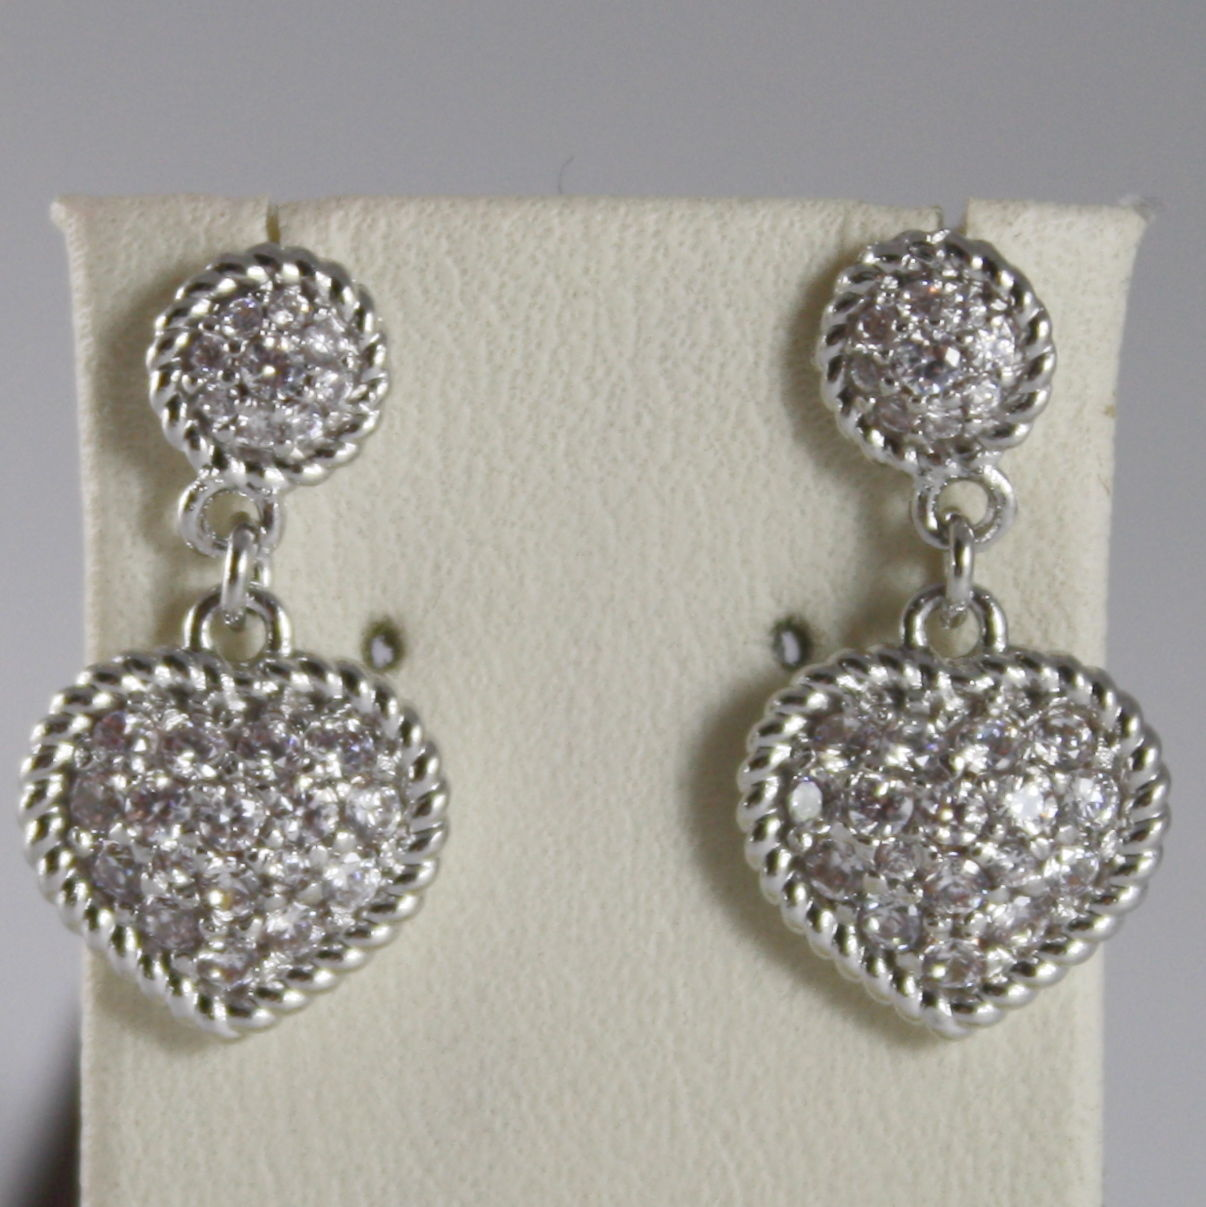 RHODIUM BRONZE EARRINGS HEART, CUBIC ZIRCONIA B14OBB11, BY REBECCA MADE IN ITAL